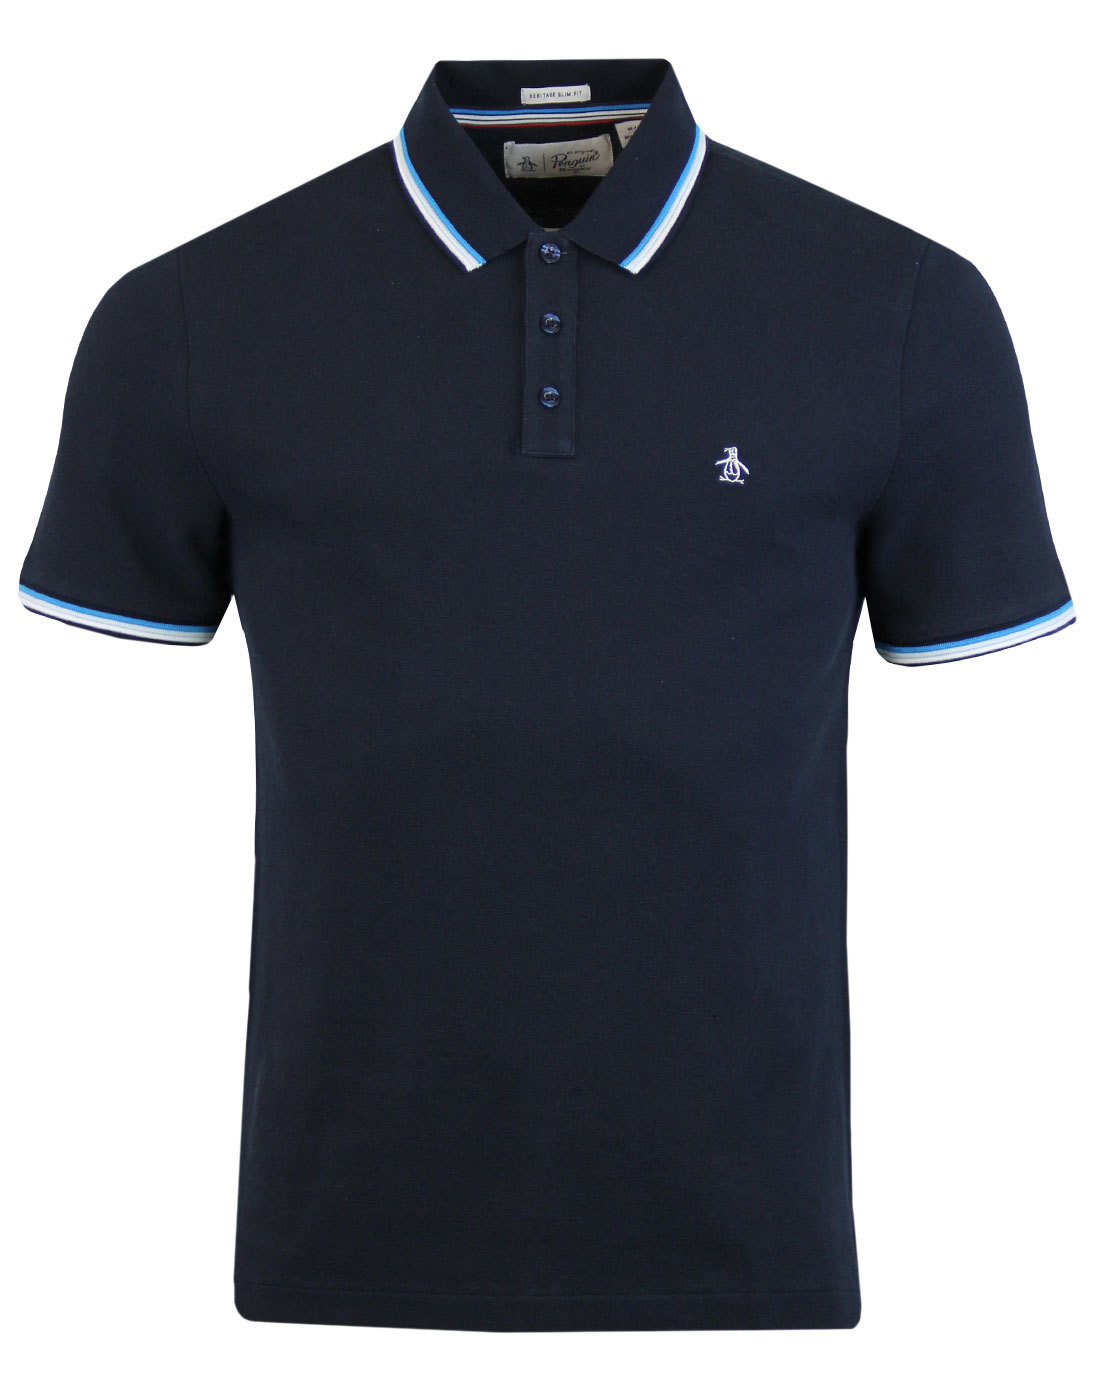 Tipped Athletic ORIGINAL PENGUIN Retro Mod Polo